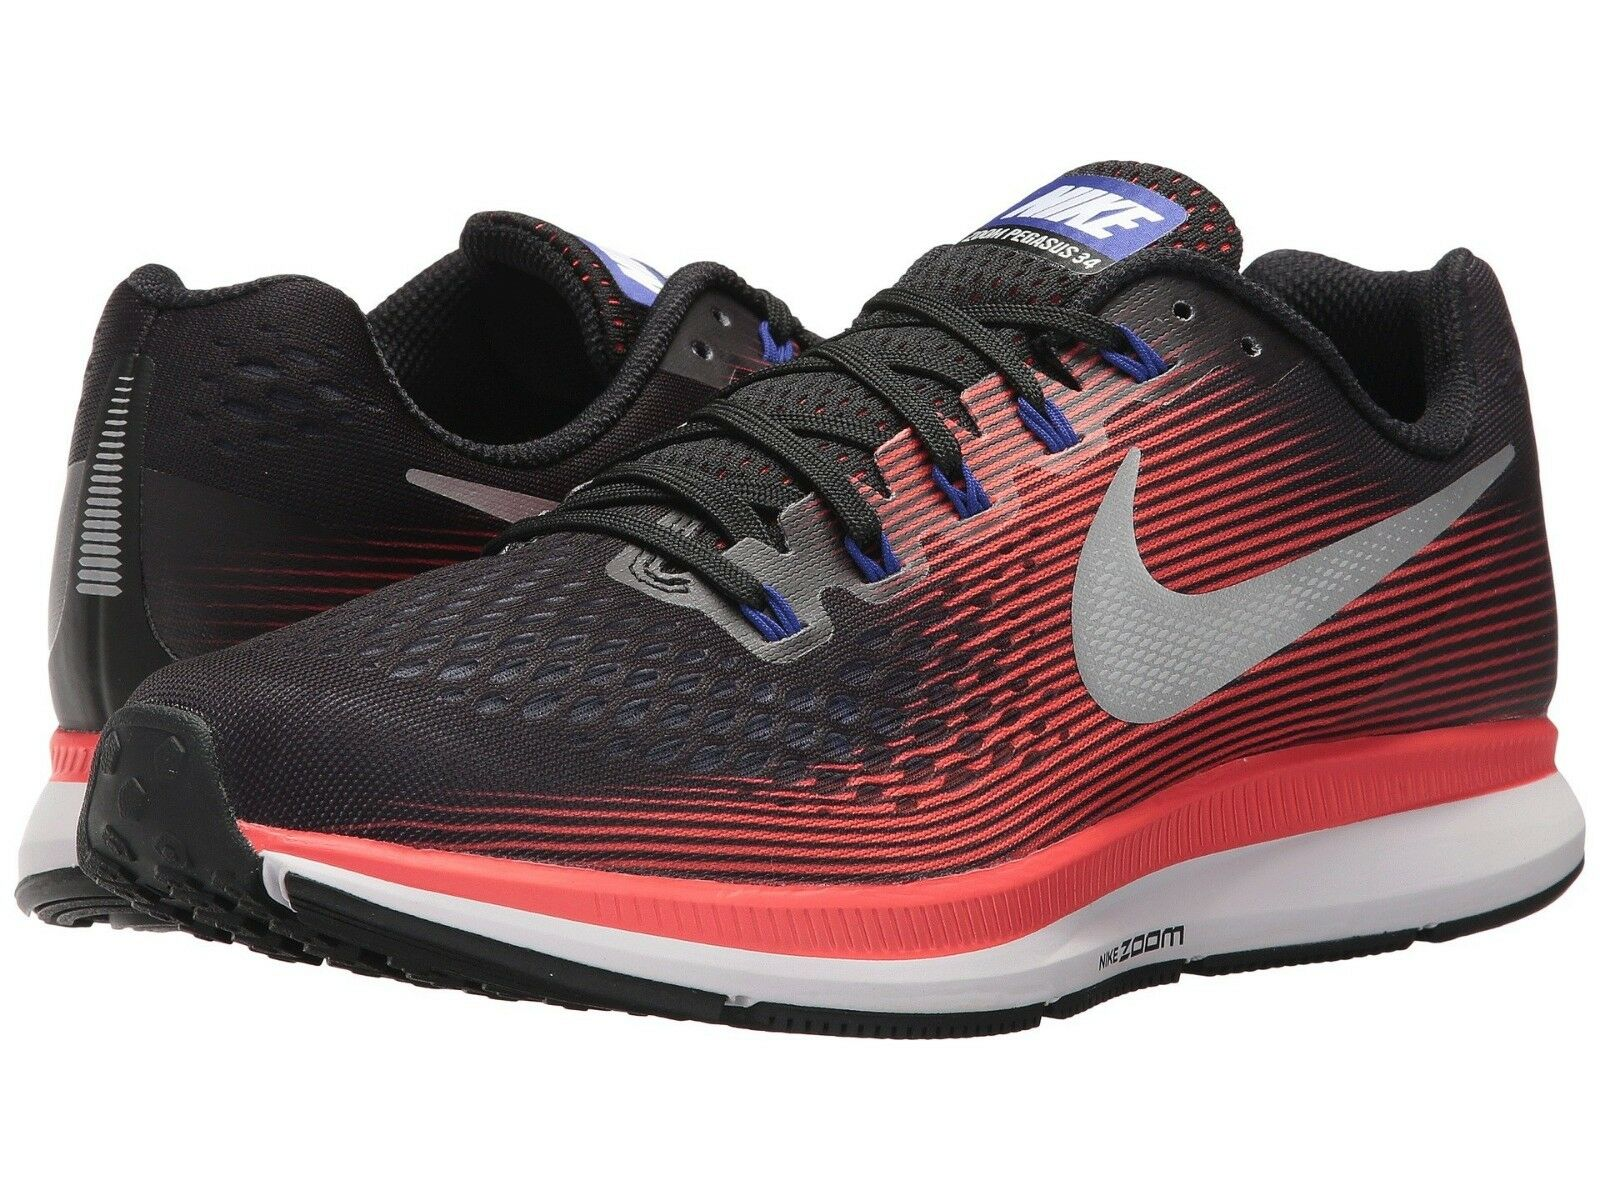 Men's Nike Zoom Pegasus 34 Running Shoes, 880555 006 Multi Comfortable